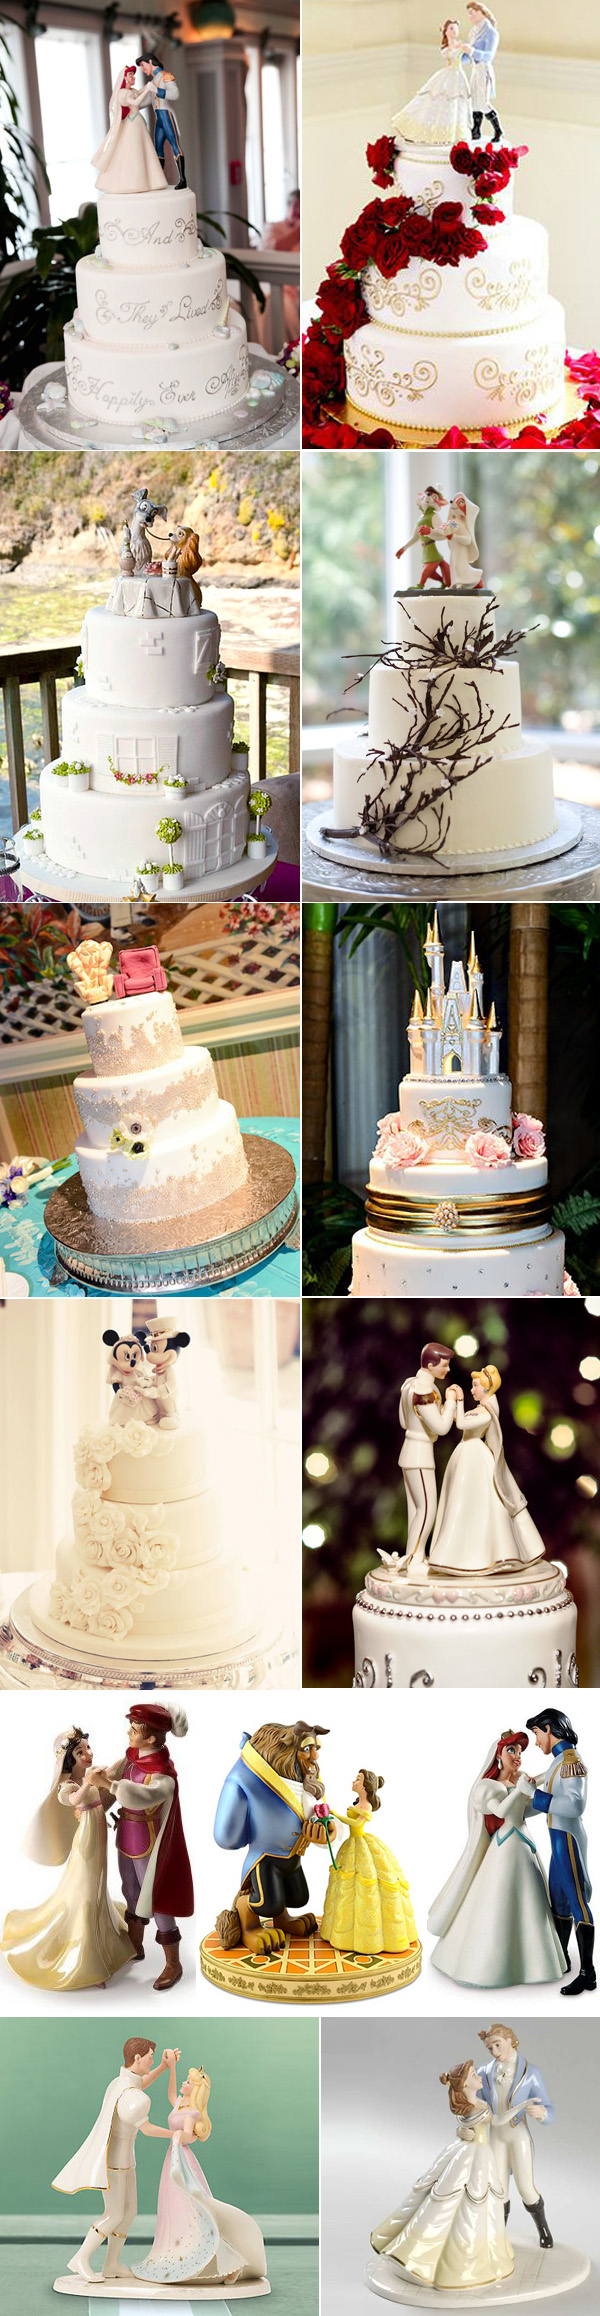 39 unique funny wedding cake toppers wedding cake toppers funny disney wedding cake toppers